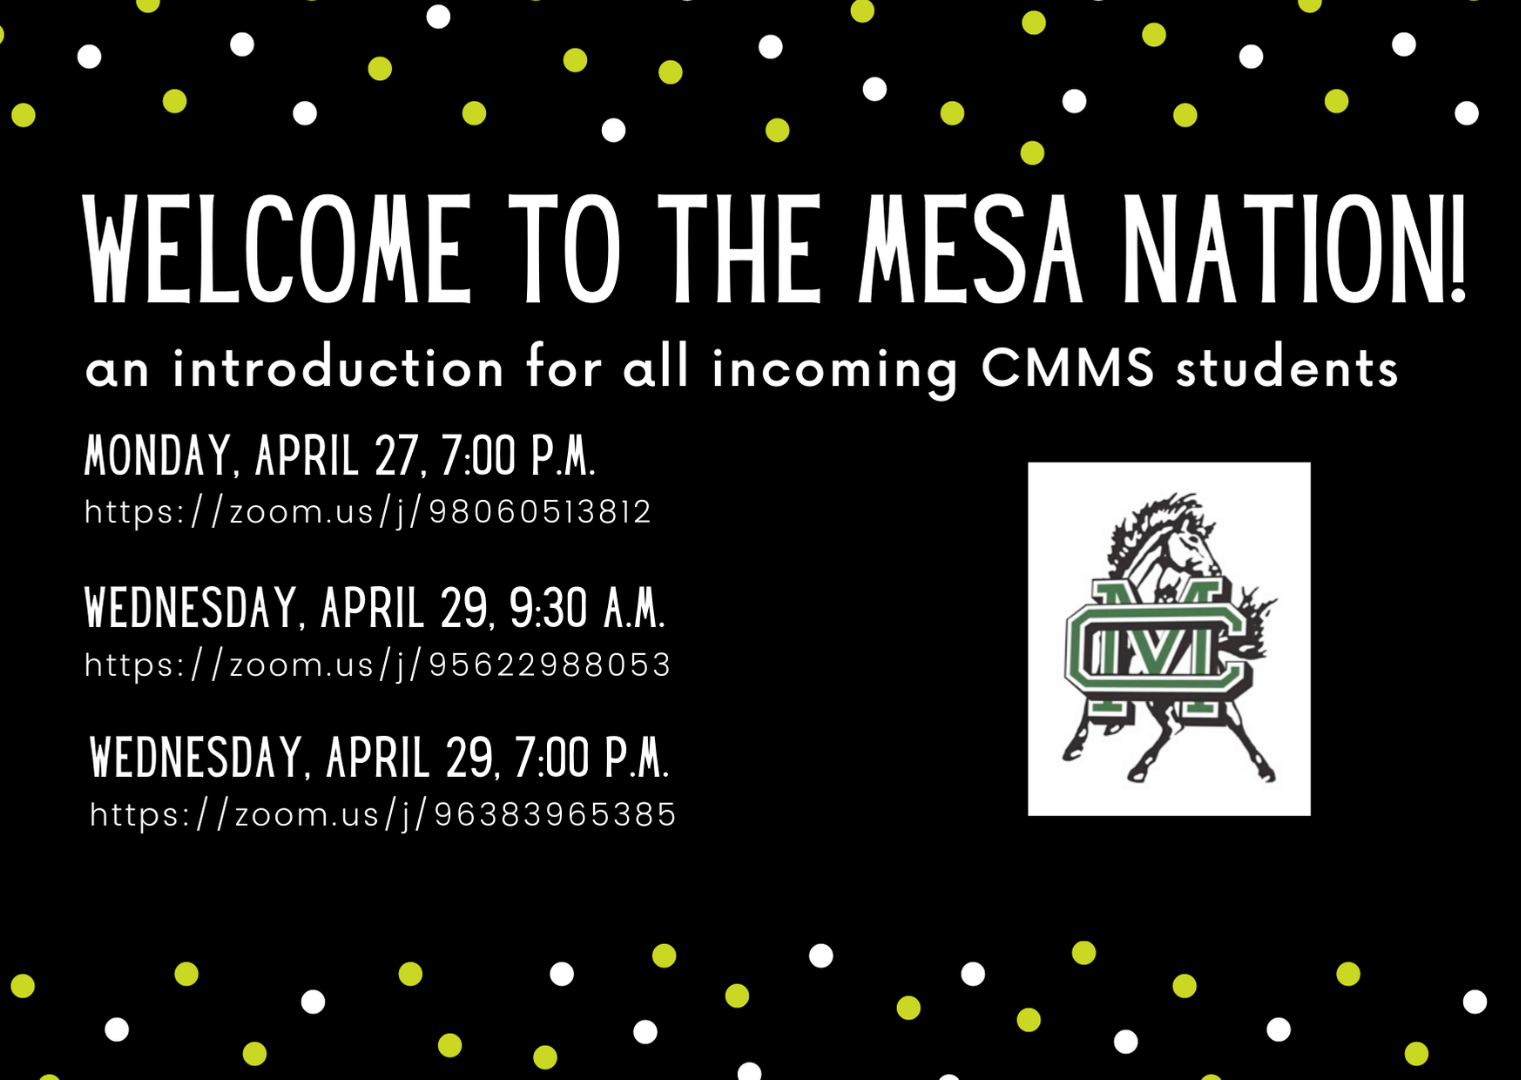 welcome to mesa nation